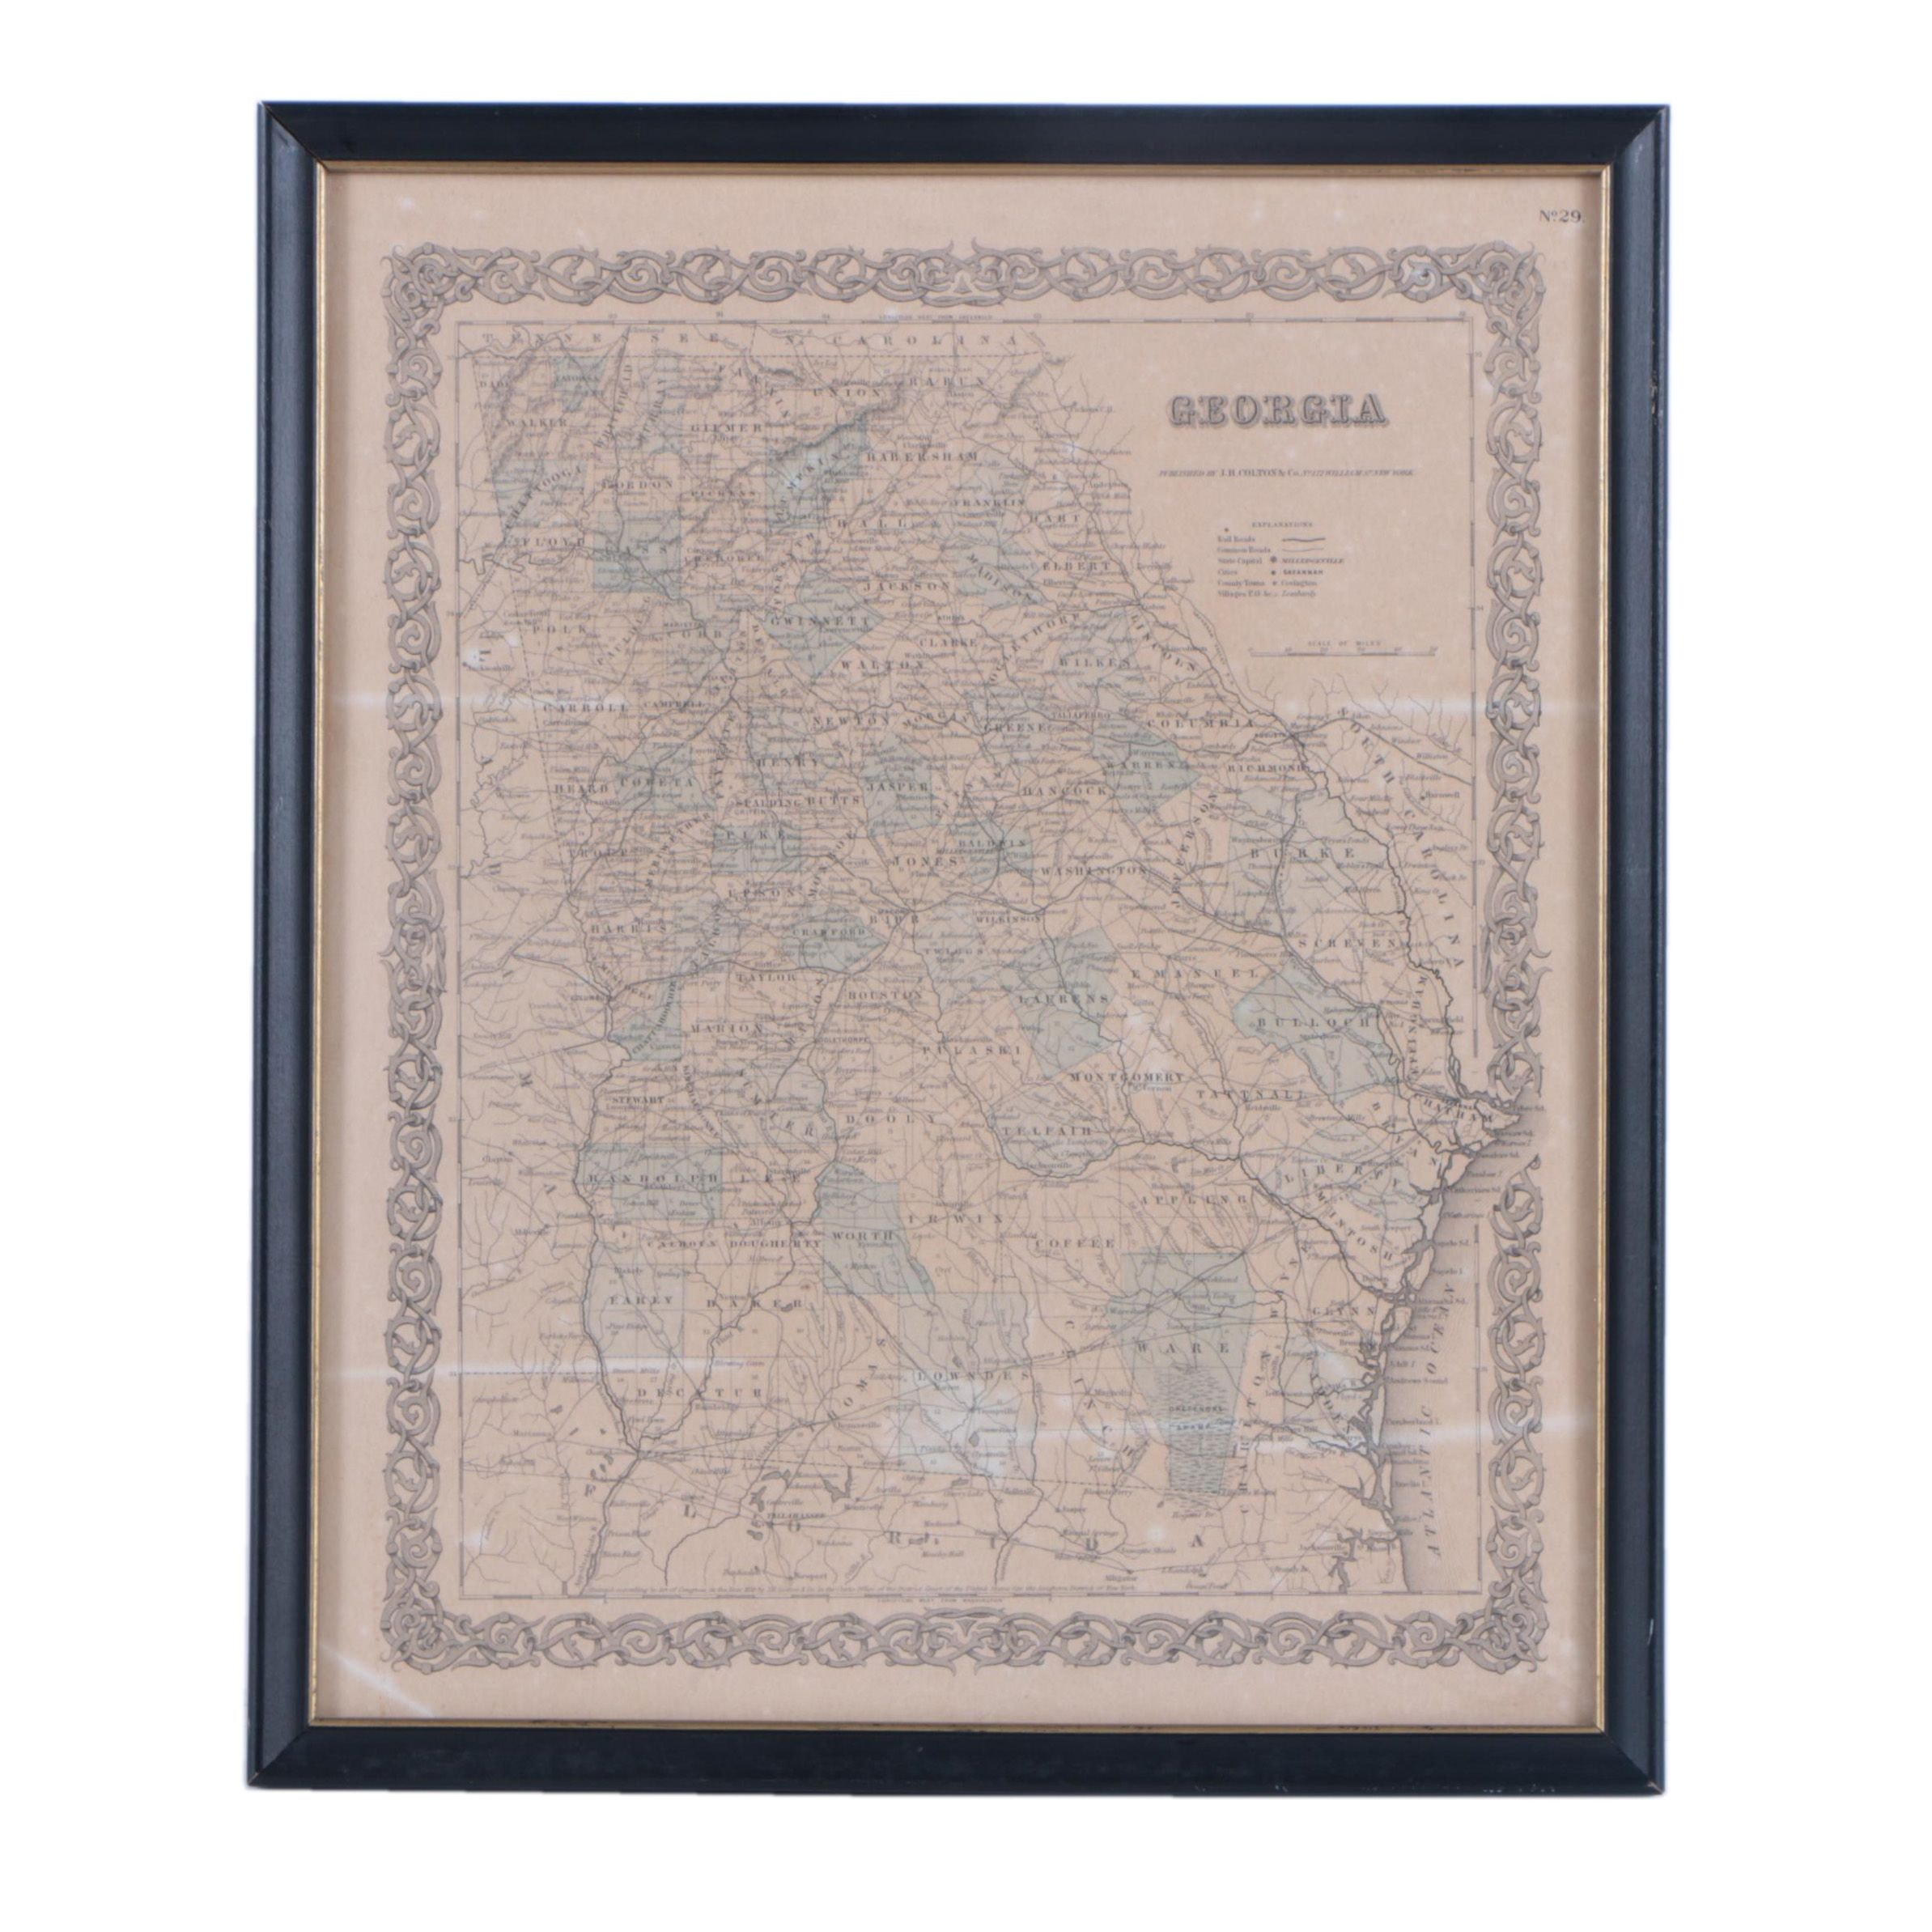 J. H. Colton & Co. 1855 Hand-Colored Map of Georgia